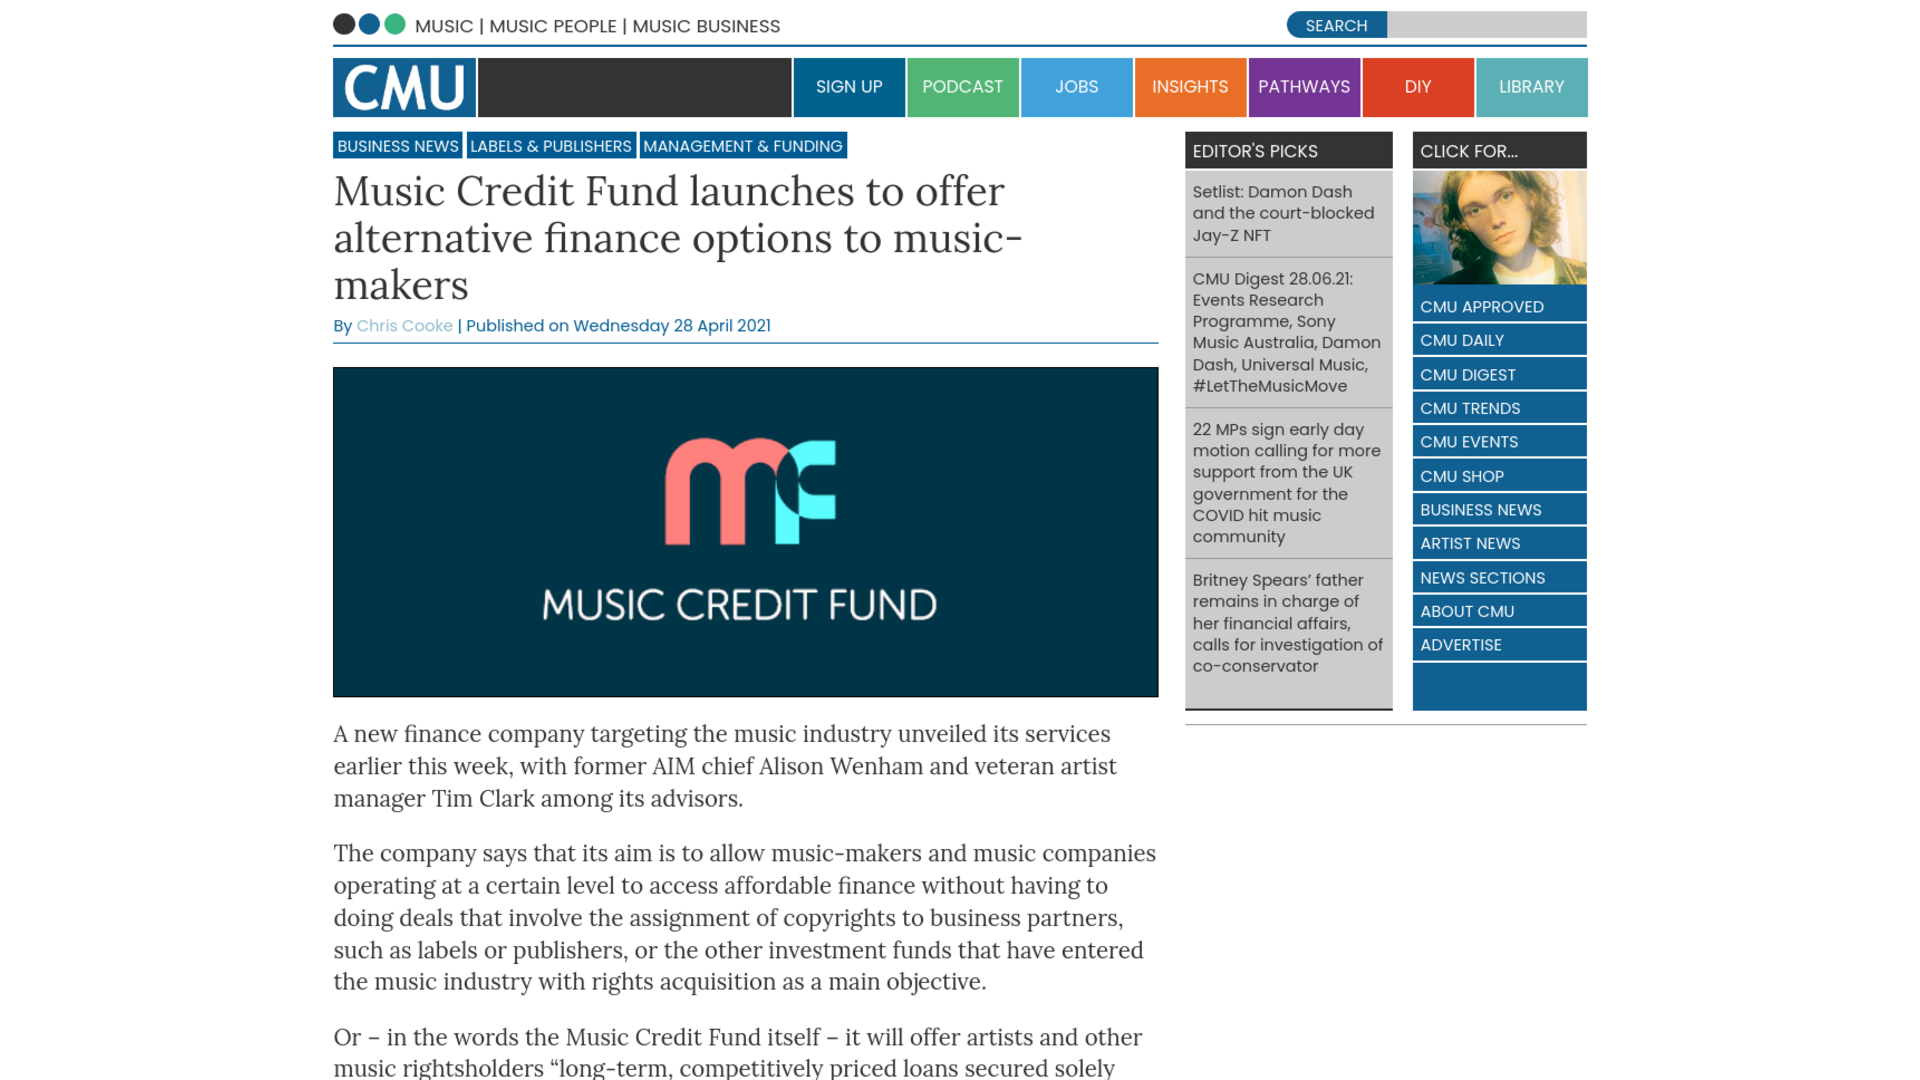 Fairness Rocks News Music Credit Fund launches to offer alternative finance options to music-makers